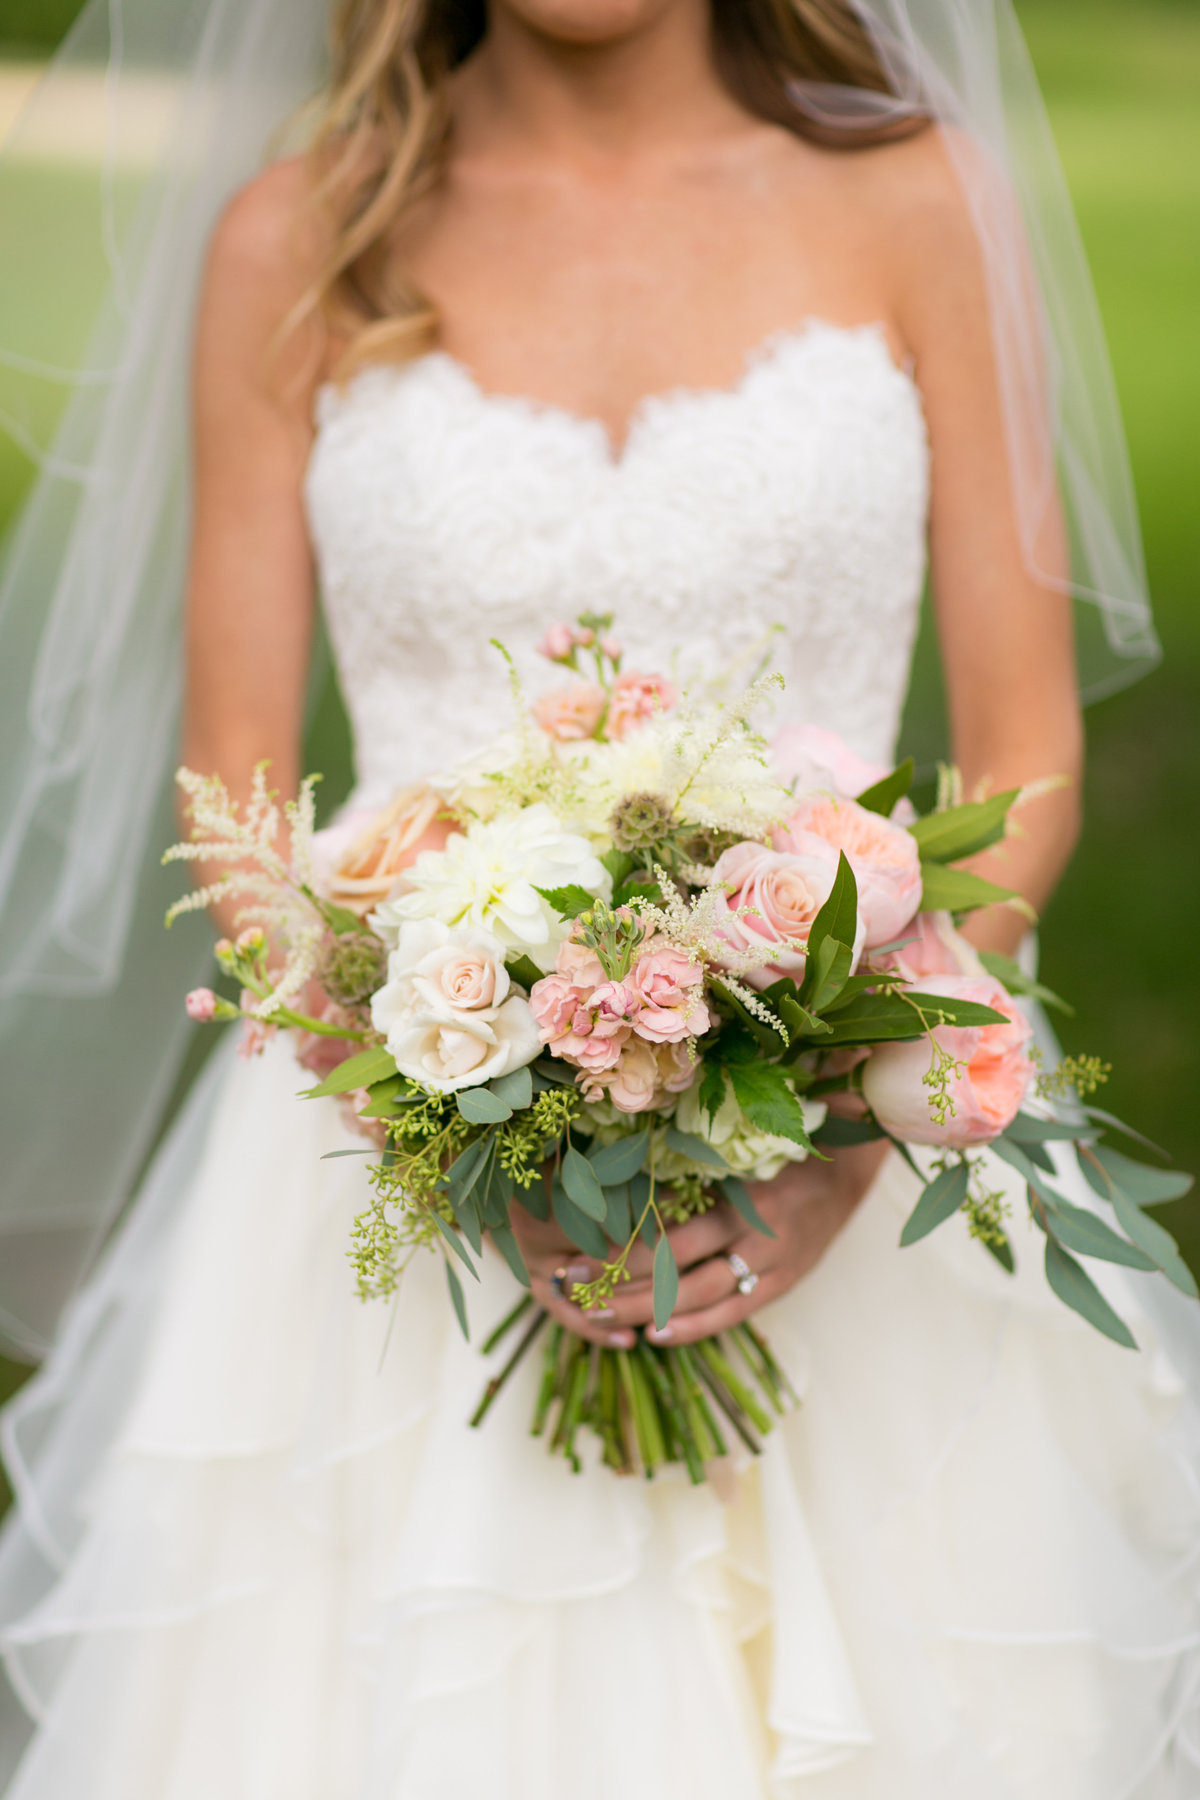 Baltimore wedding bouquet from Crimson & Clover